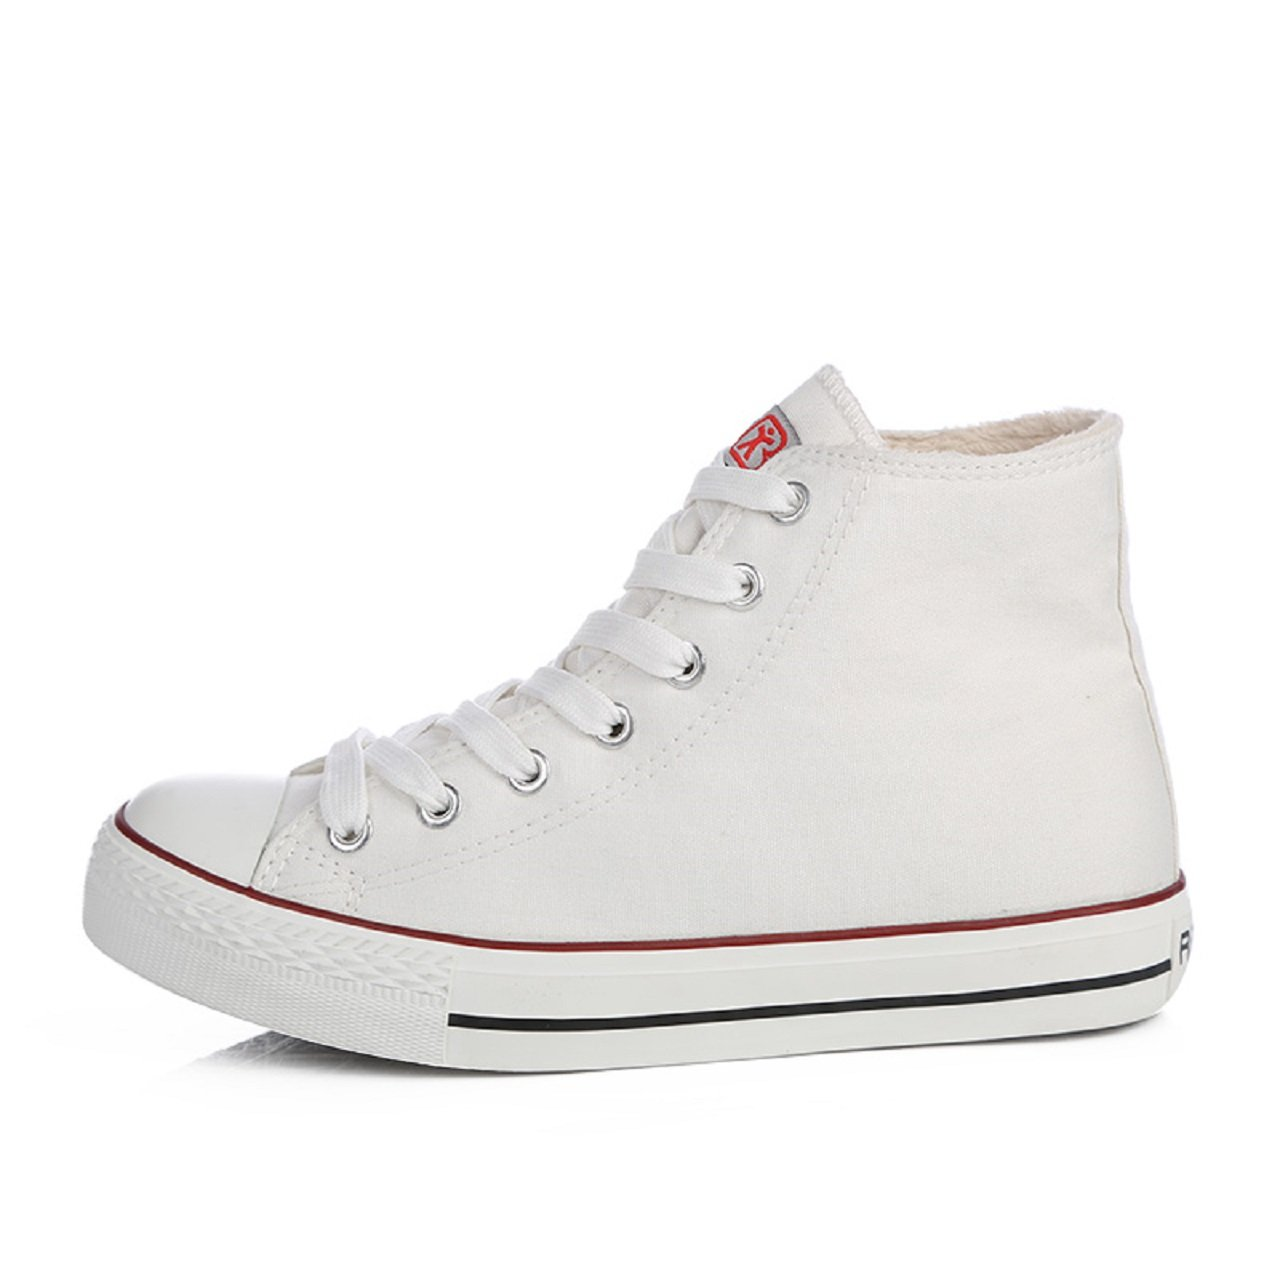 Renben High Top Sneakers For Womens Platform Lace-Up Canvas Fashion Shoes